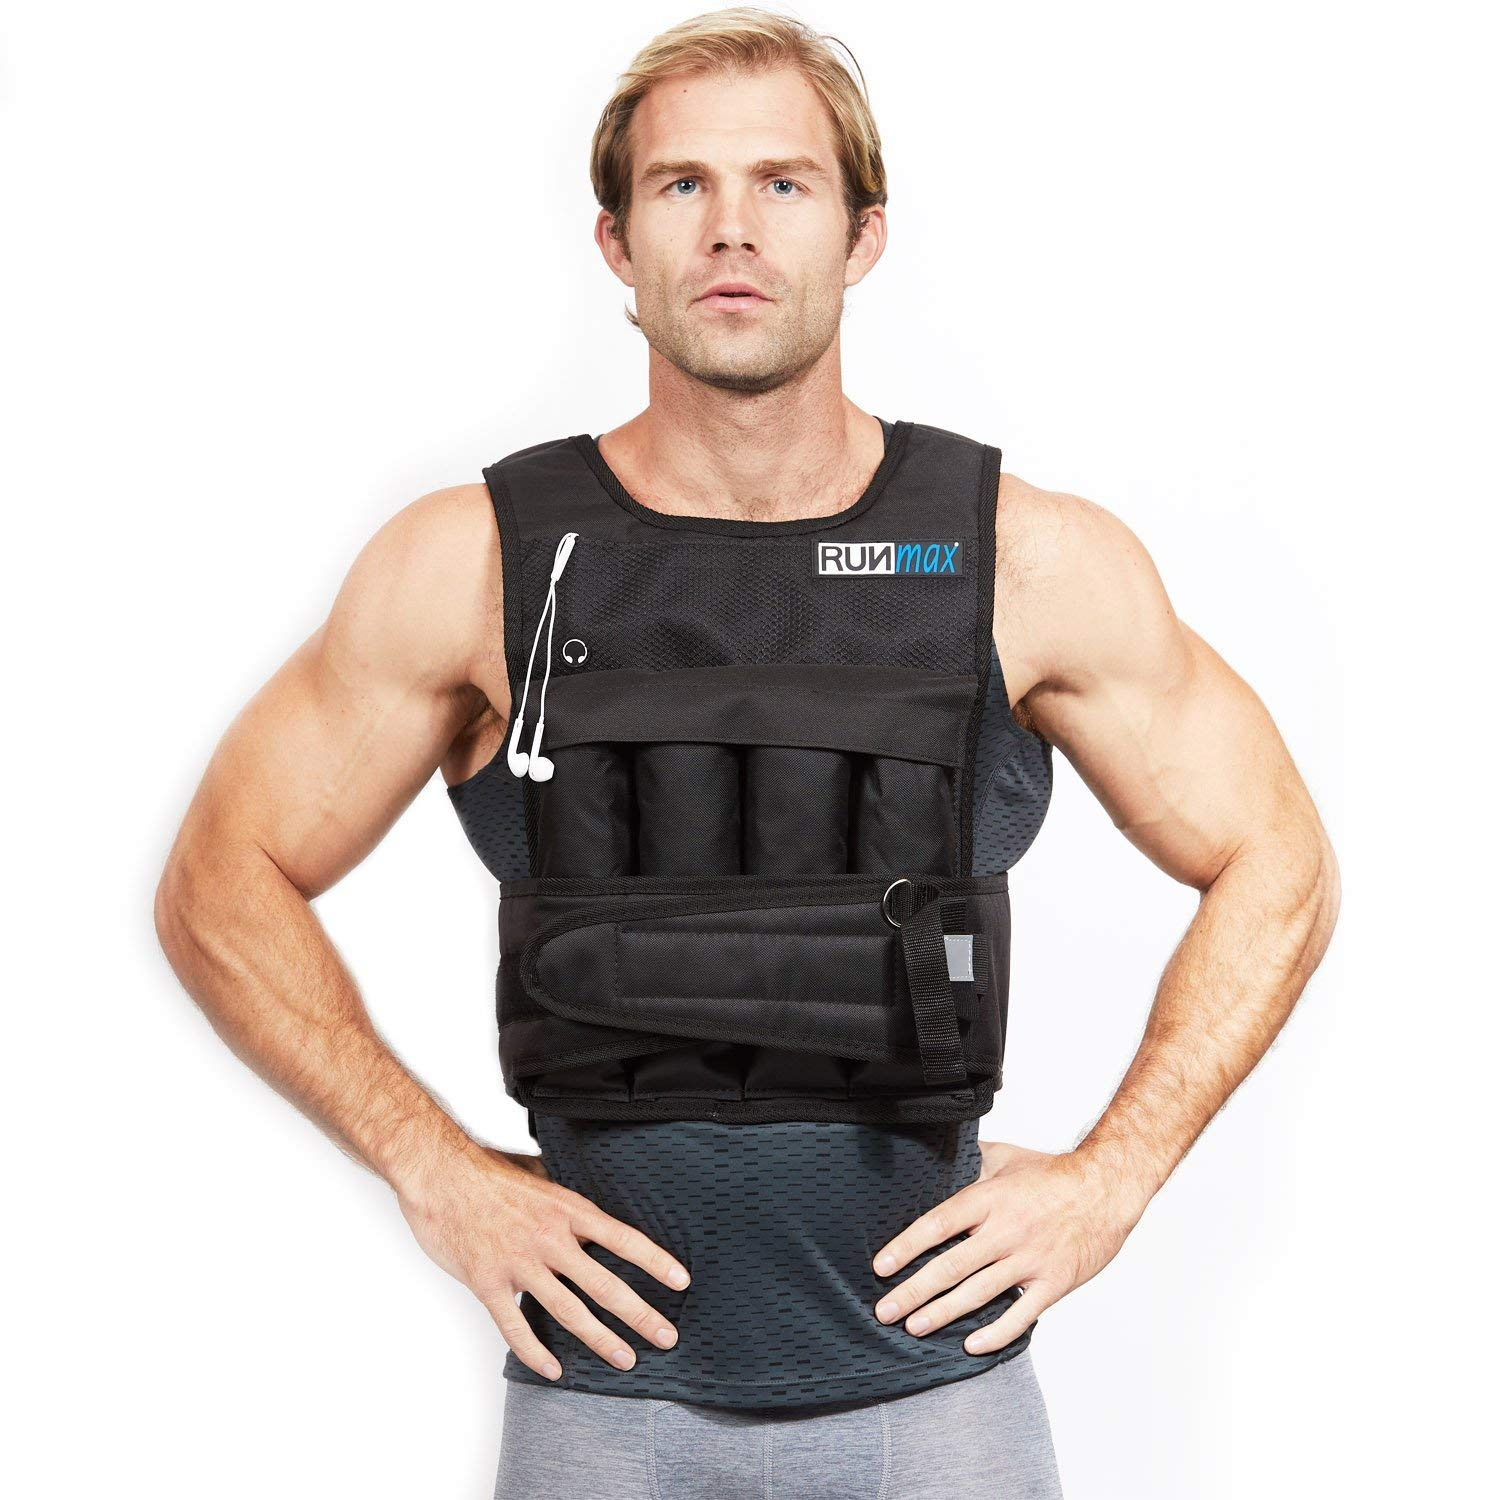 RUNFast Pro Weighted Vest 12lbs-60lbs (with Shoulder Pads, 12 LB)